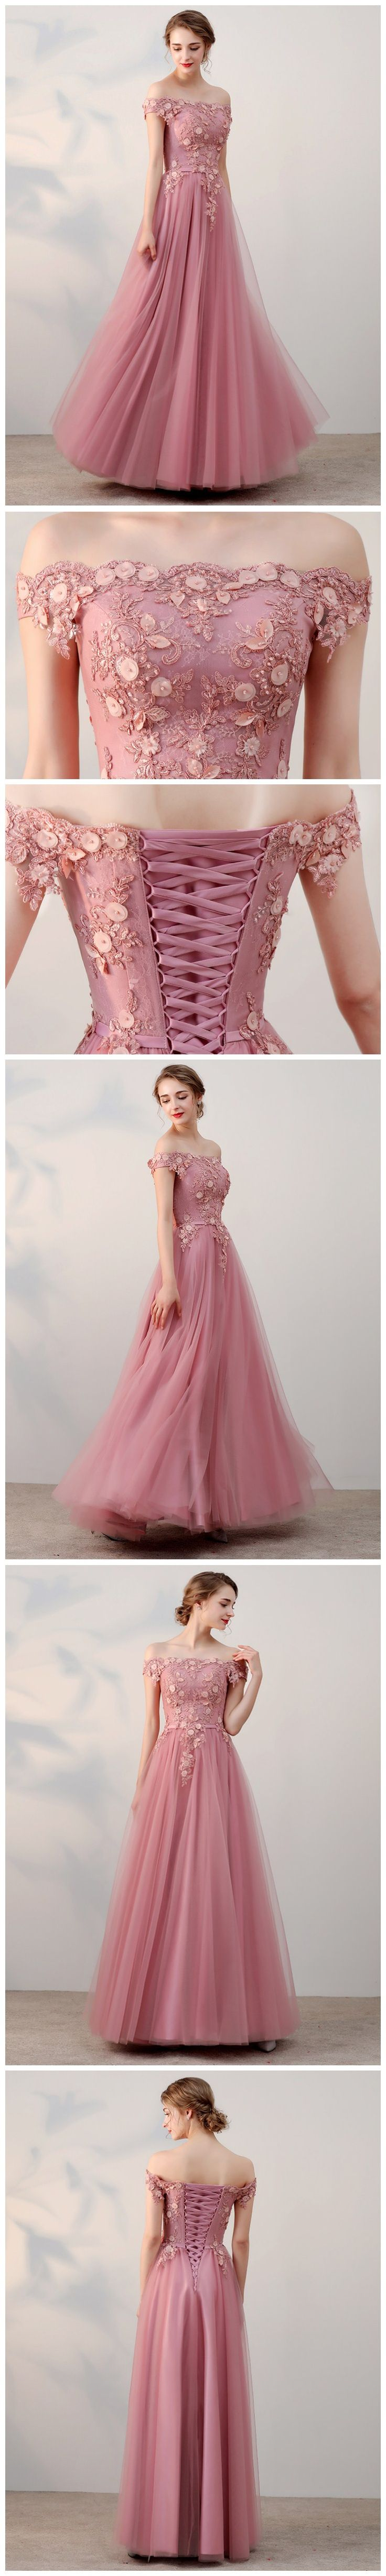 Chic A-line Off-the-shoulder Pink Applique Tulle Modest Long Prom Dress Evening Dress,PD2002 #seoydress #fashion #shopping